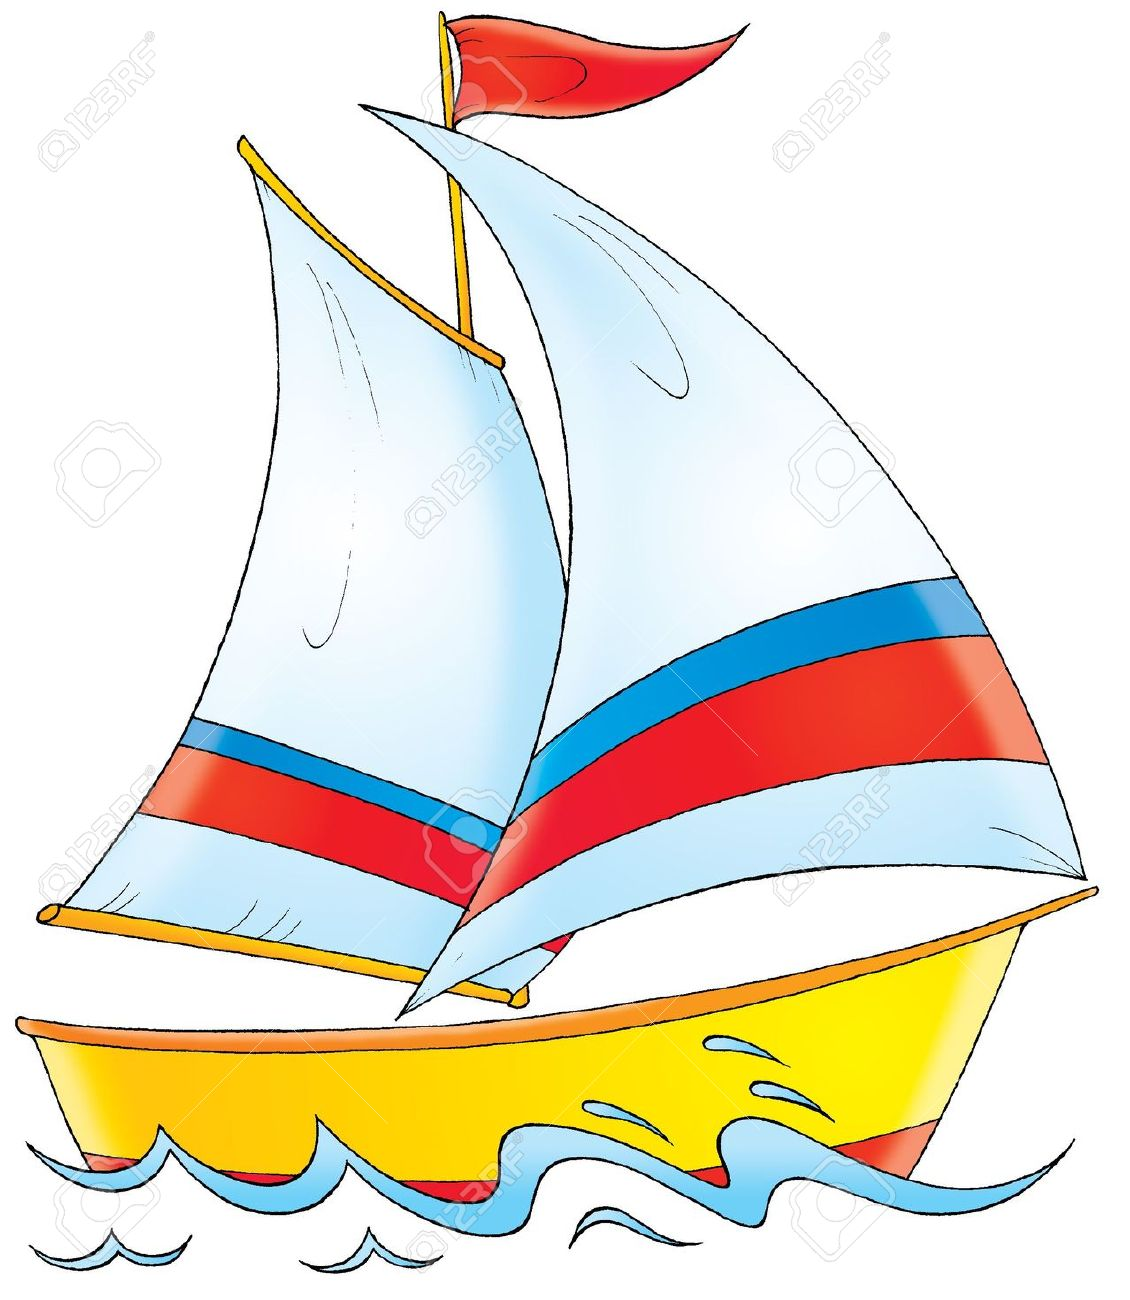 Yacht boat cartoon clipart .-Yacht boat cartoon clipart .-1